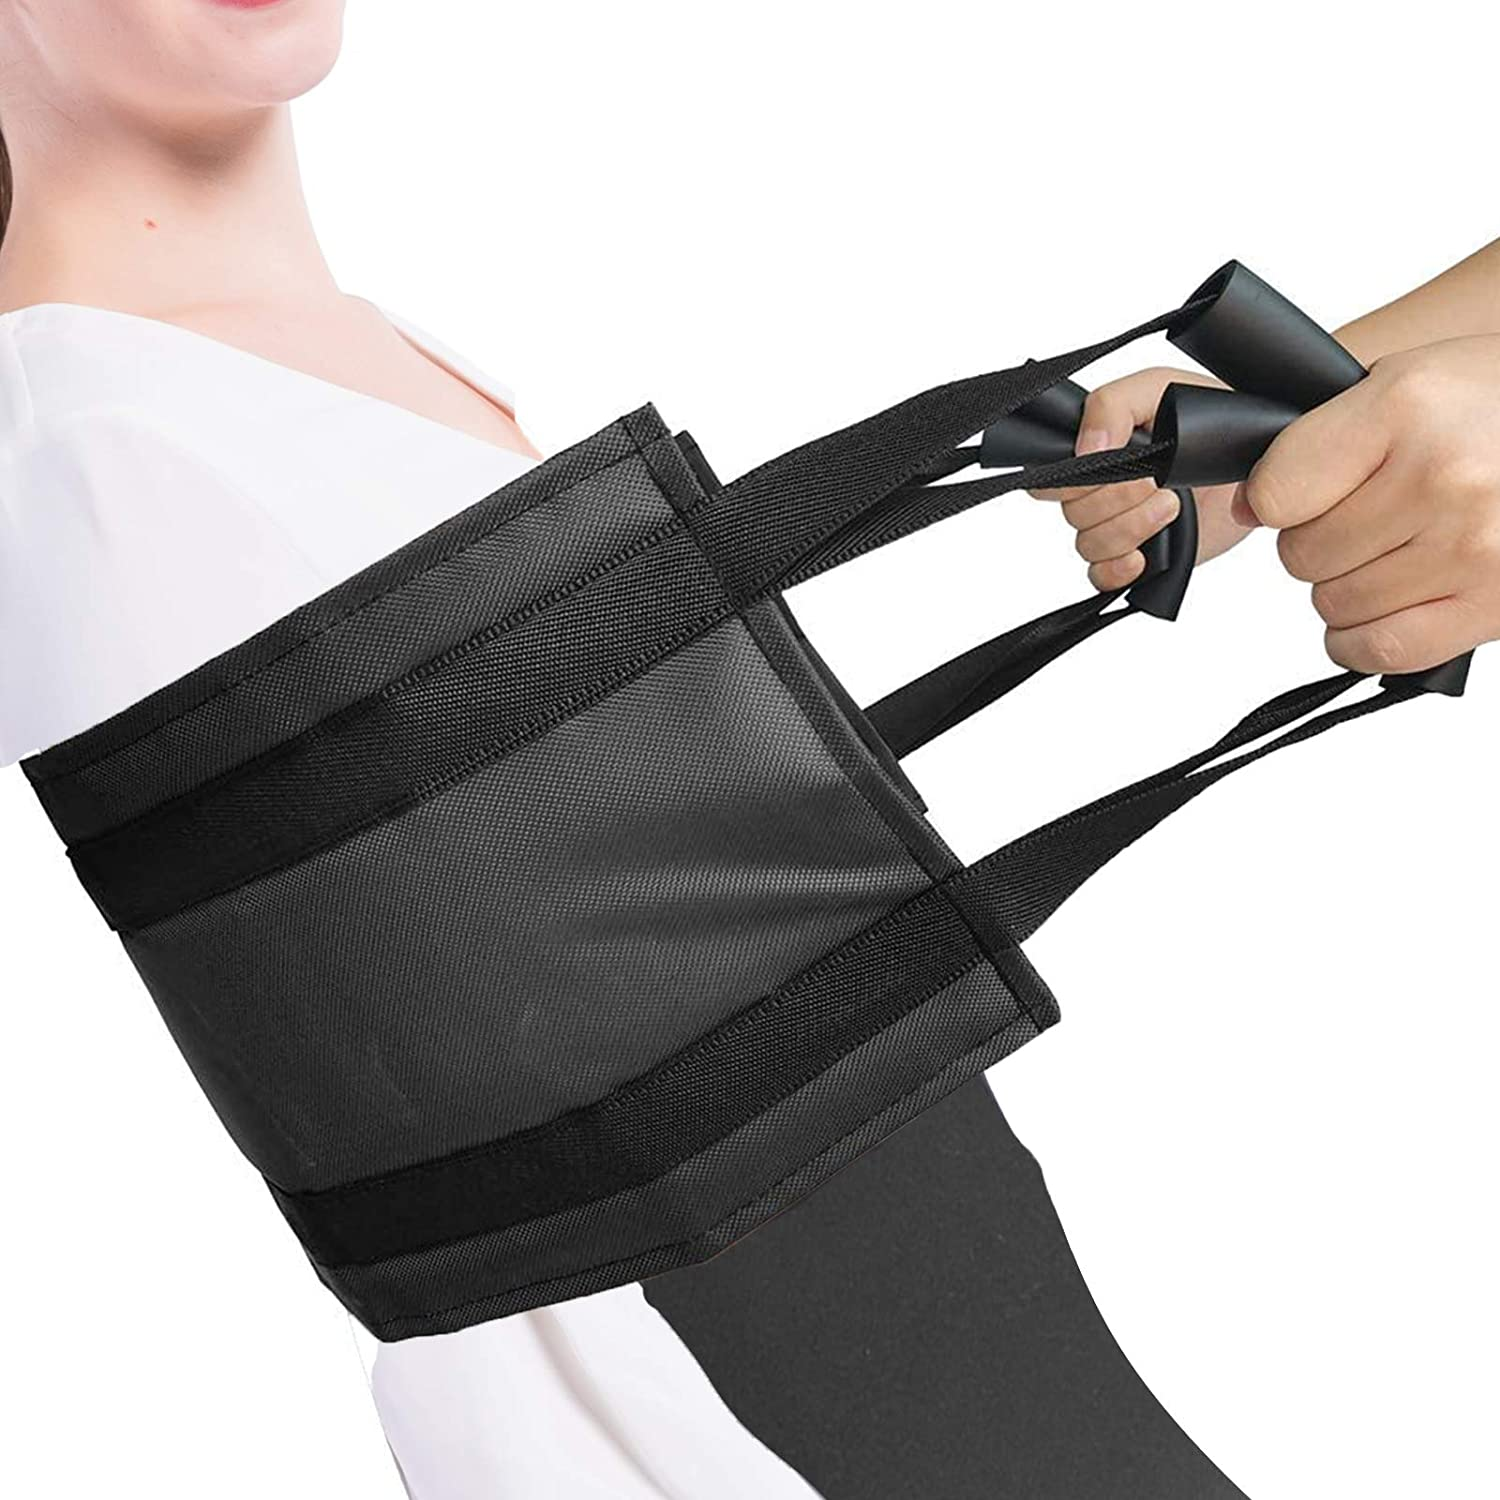 Gait Belt Elderly Assistance Product for Patient Lift Aid 39'' Thicken Transfer Sling with Sponge Grip Handles Seniors Home Living Care on The Bed and Chair